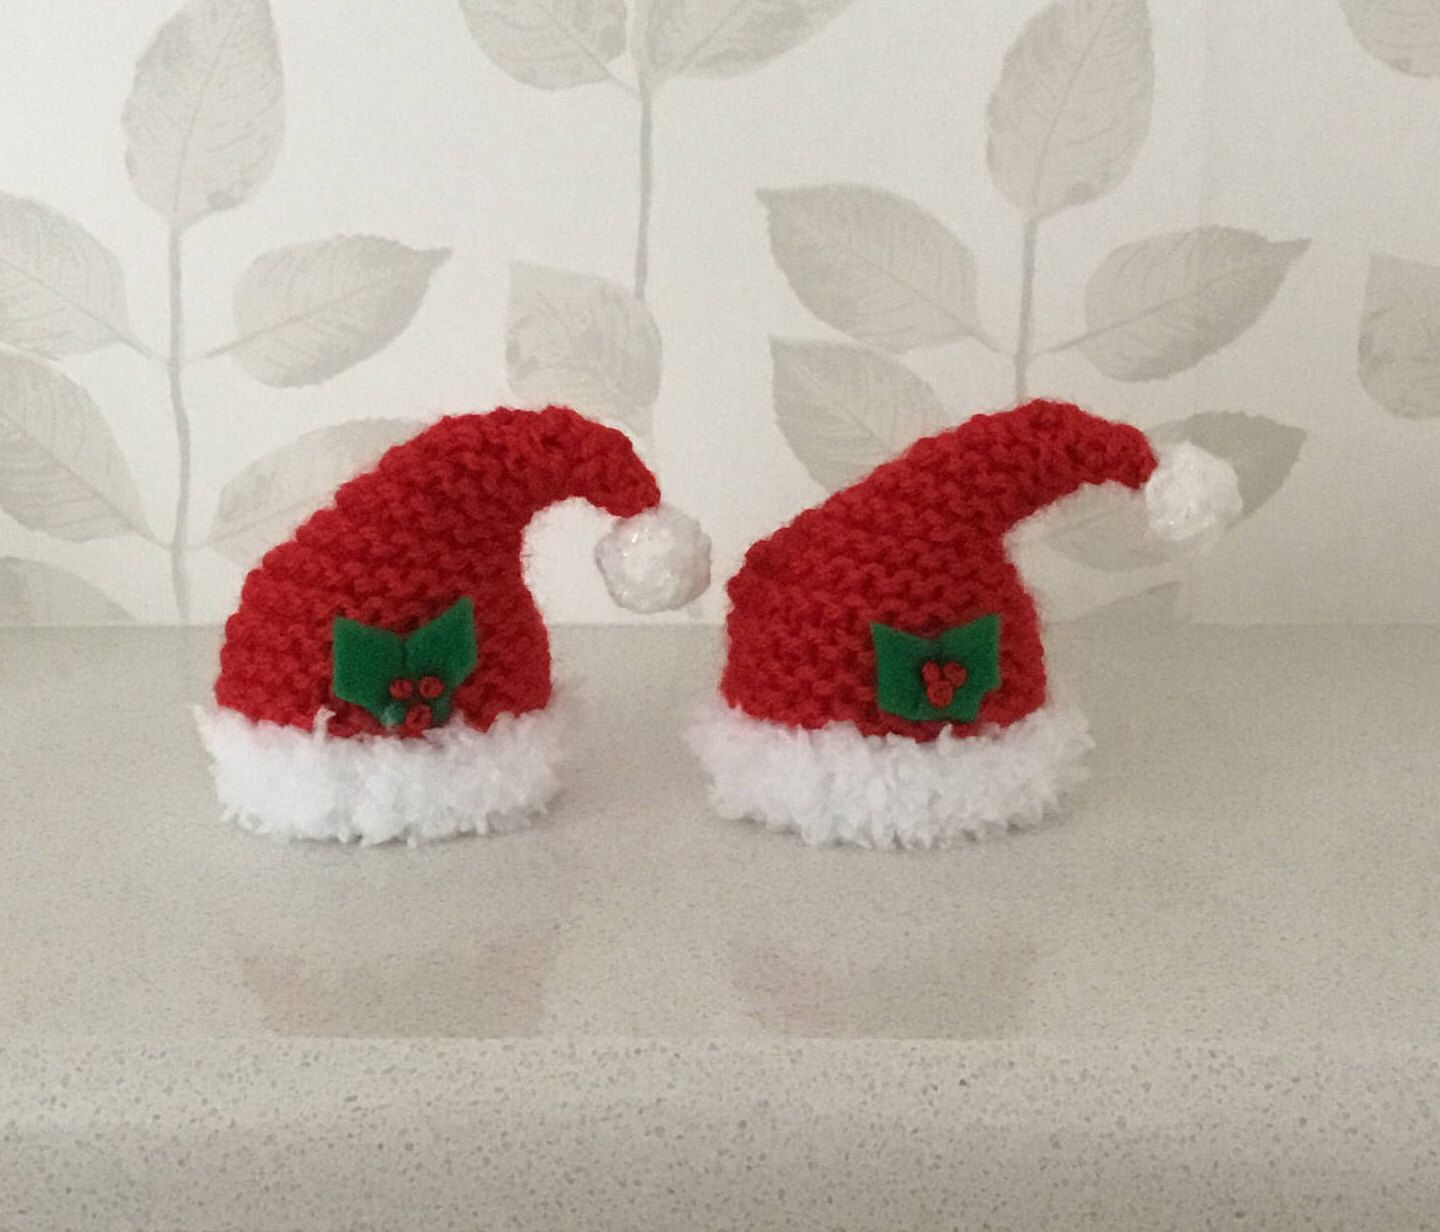 Excited to share the latest addition to my  etsy shop  Hand knitted Santa  hat covers for ferrero rocher chocolate x 2 248747469de